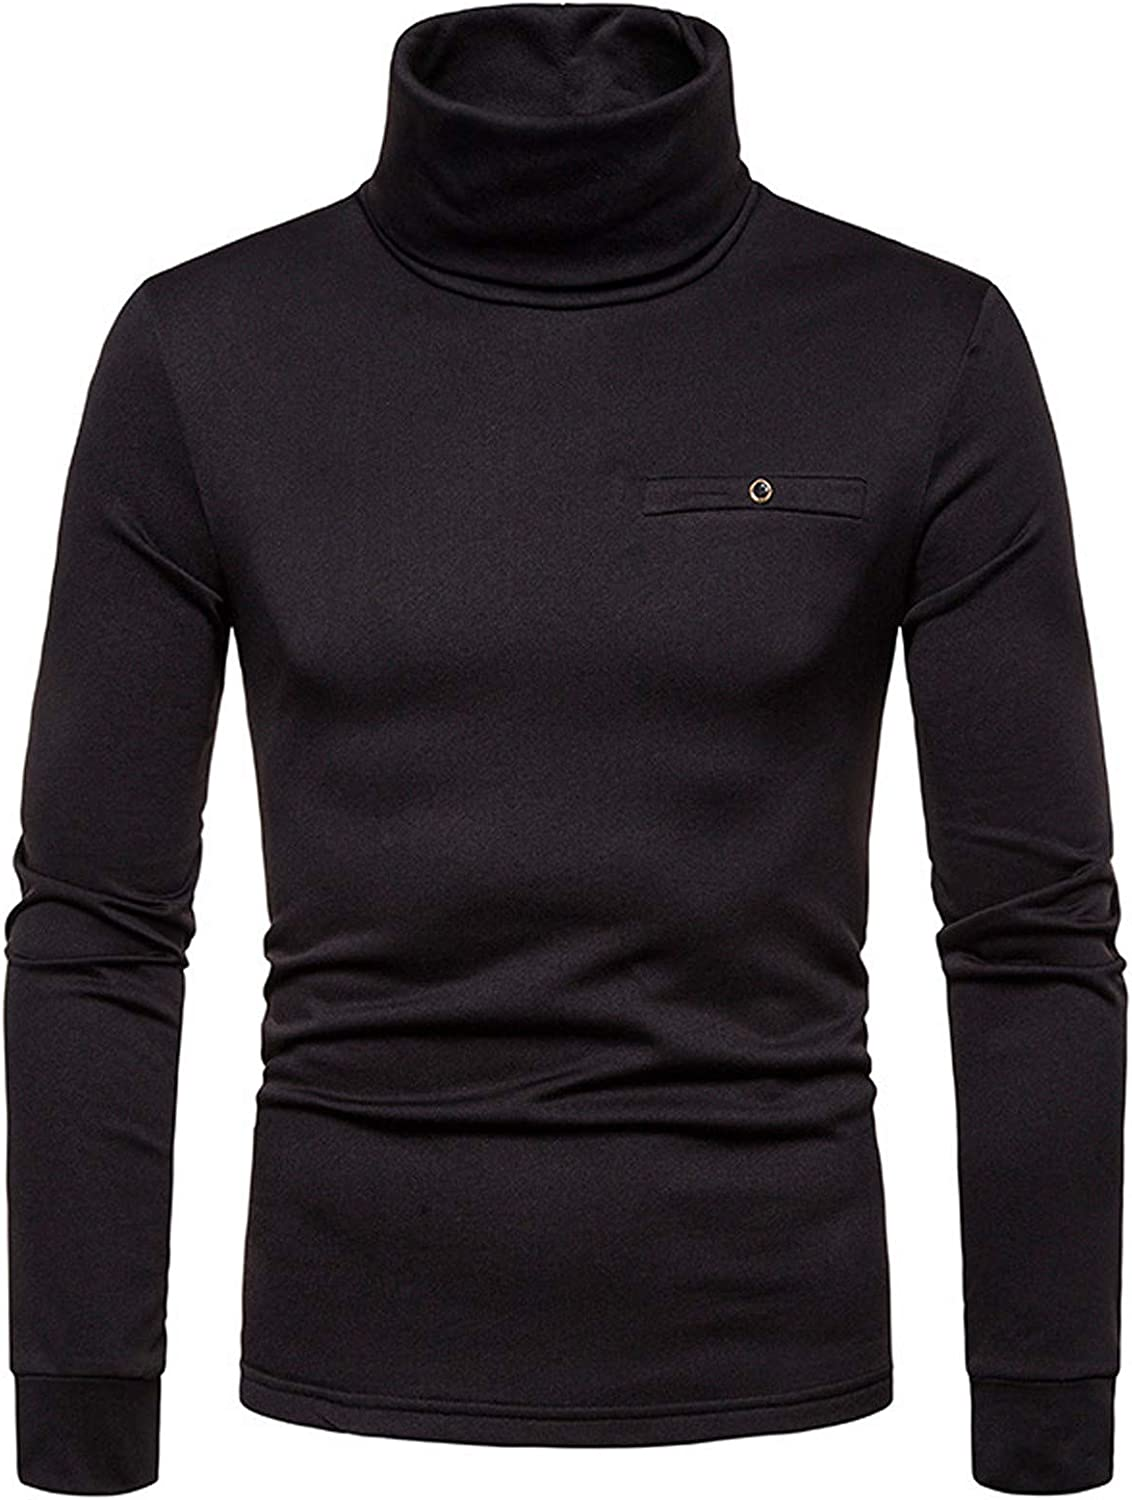 Men's Turtleneck Pullover Tops Popular product Long Thermal Sweater Stret All stores are sold Sleeve